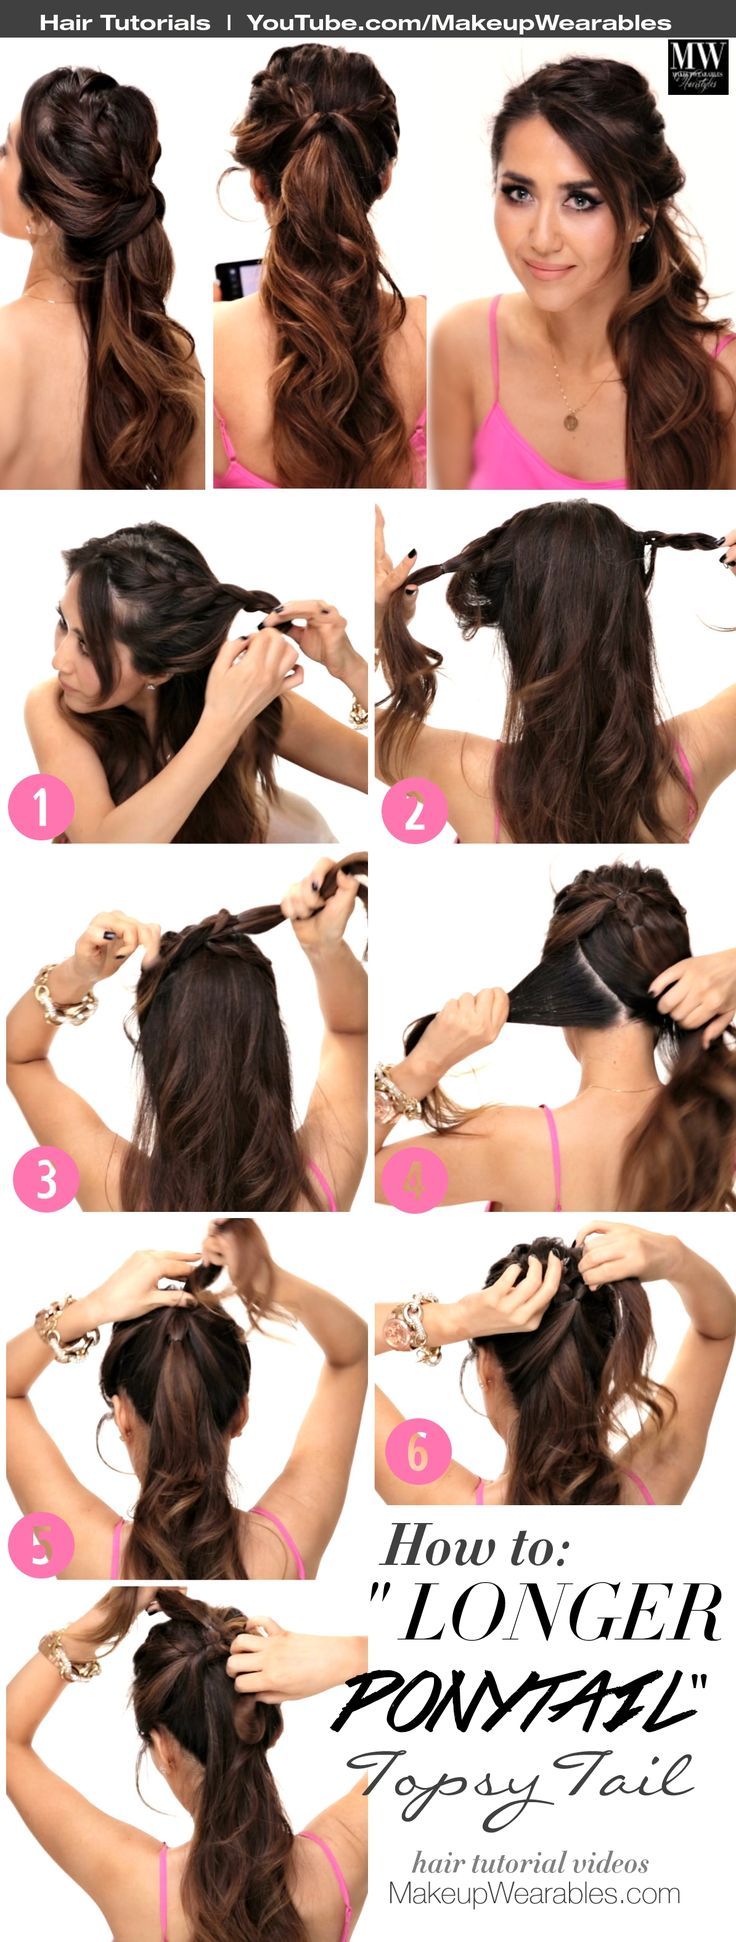 4 Lazy Girl's Easy #Hairstyles   How to Cute #Braids + Messy #Buns #style #styles #hair #beauty #longhair #ponytail #updos #hairstyle